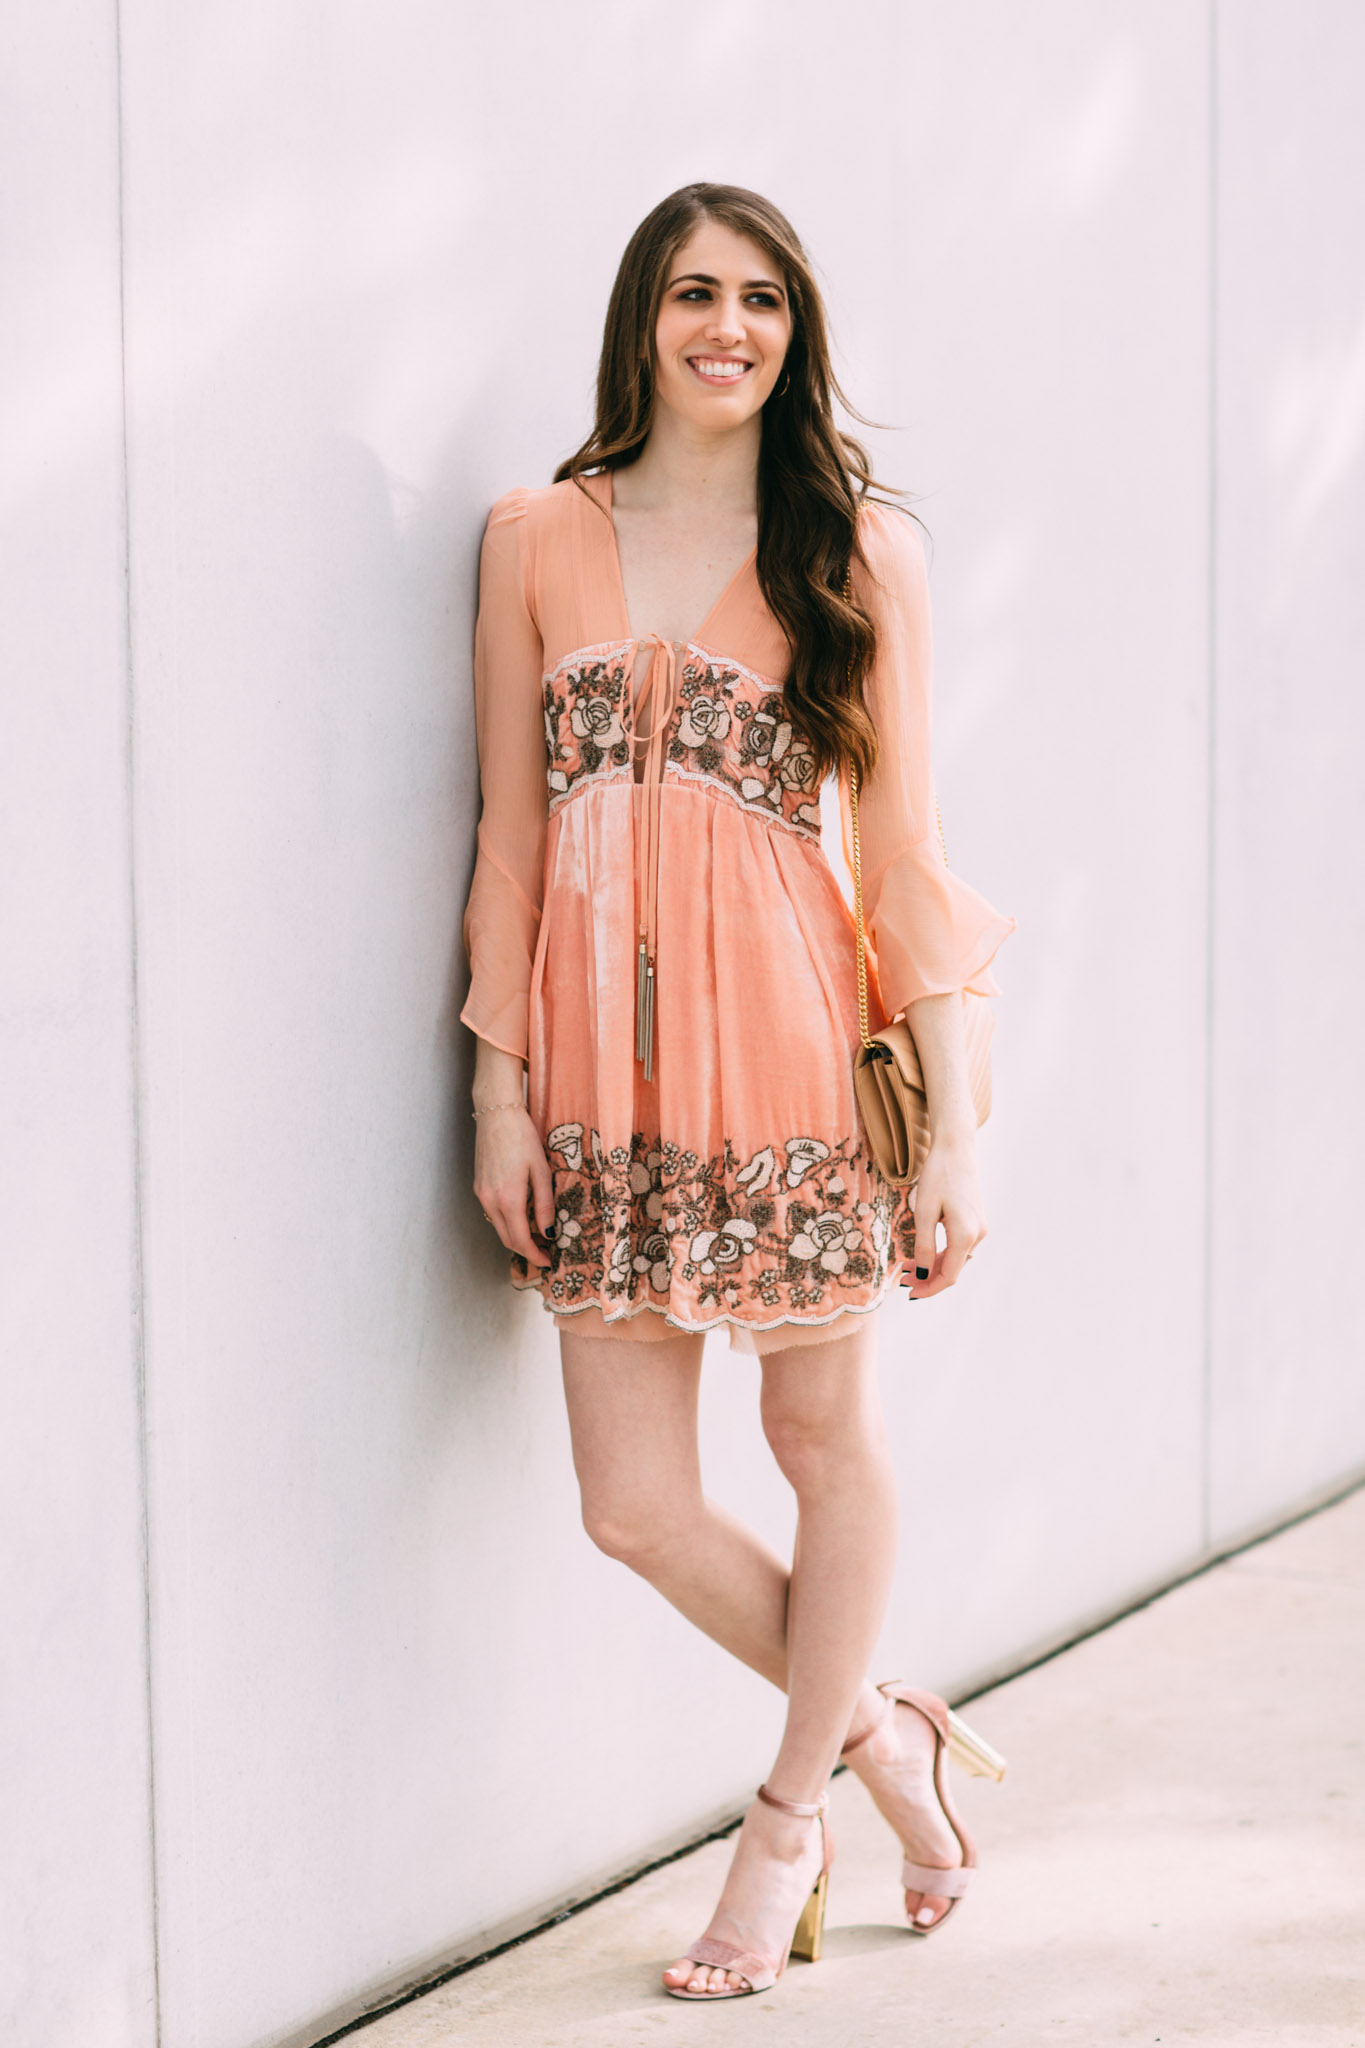 Los Angeles fashion bloggers to follow